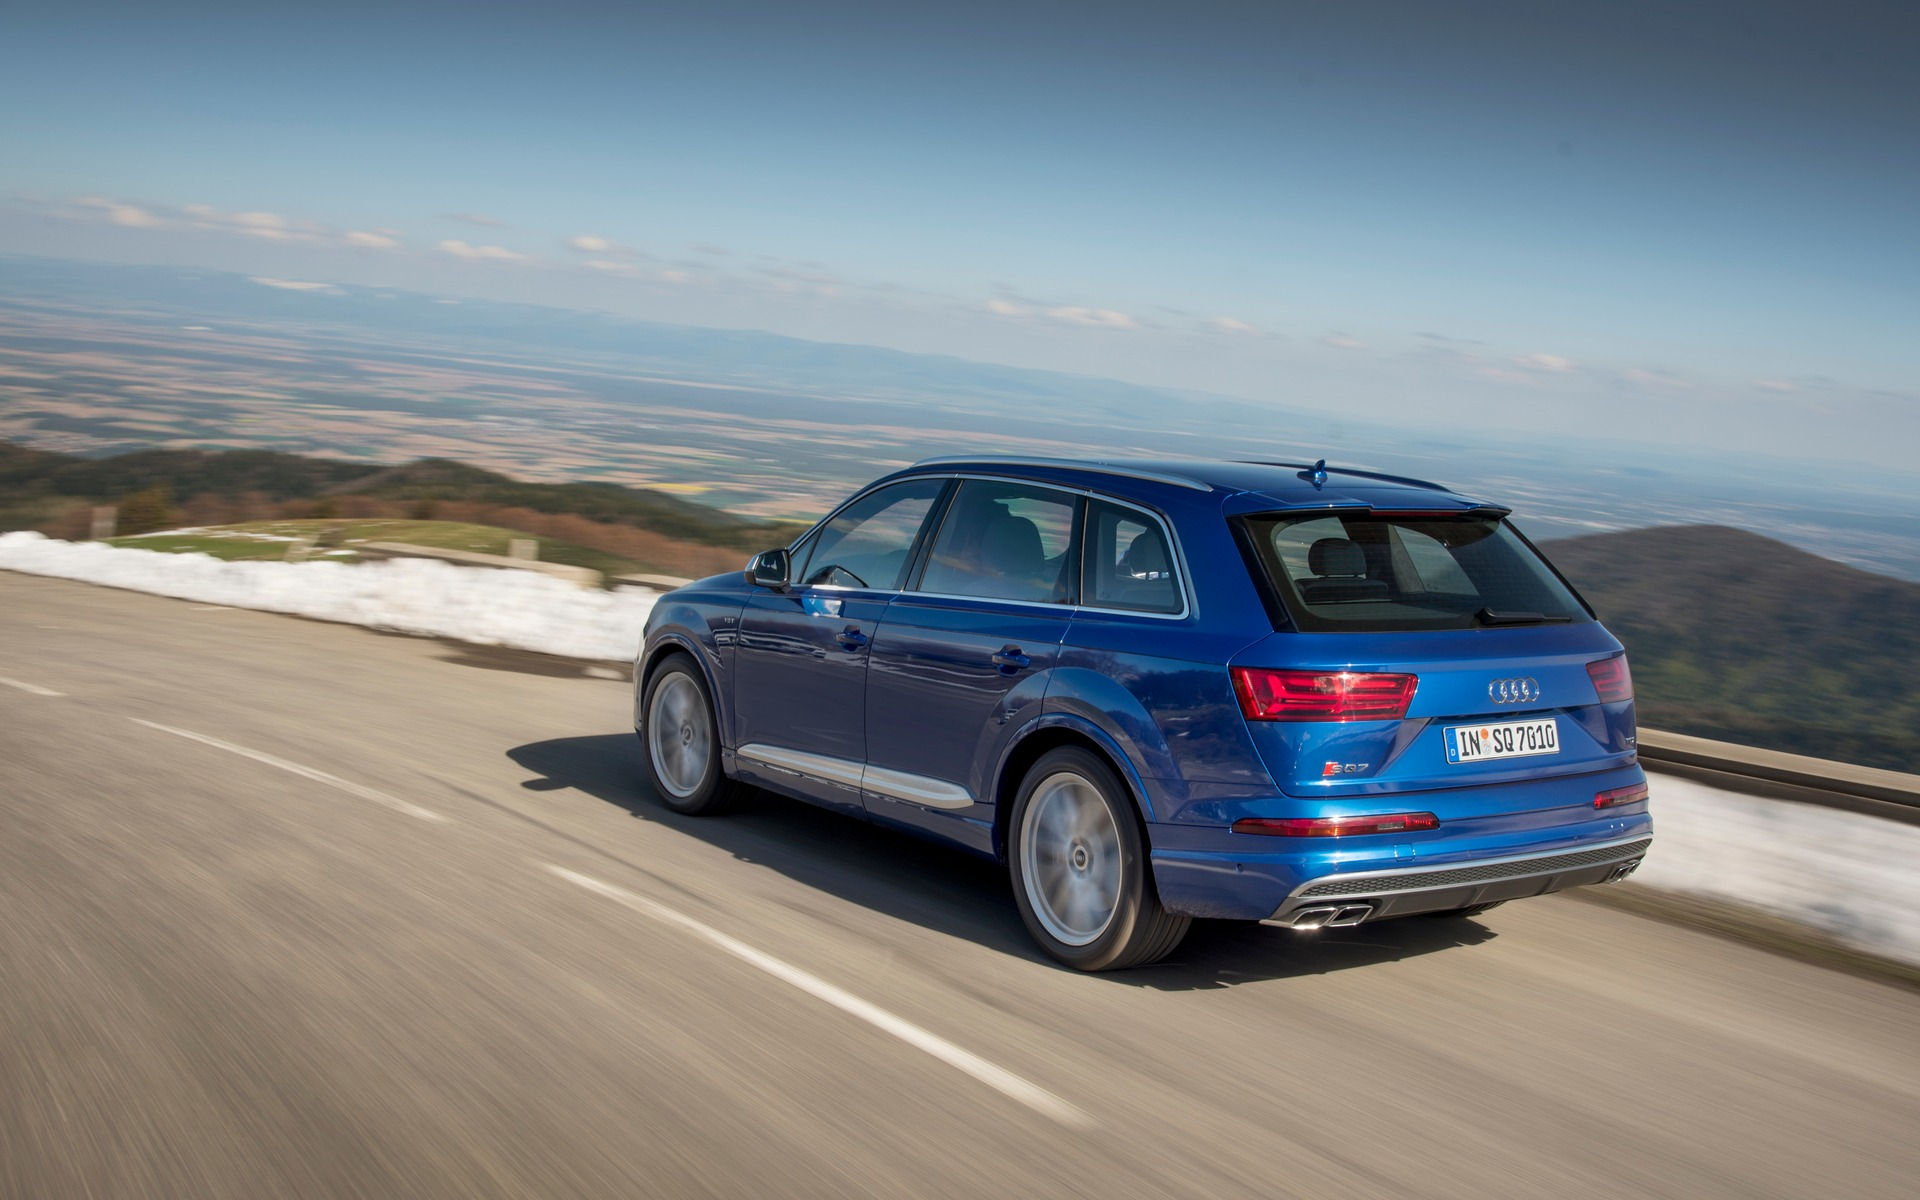 2018 Audi Sq7 Tdi The Most Powerful Of All Diesel Suvs 2 20